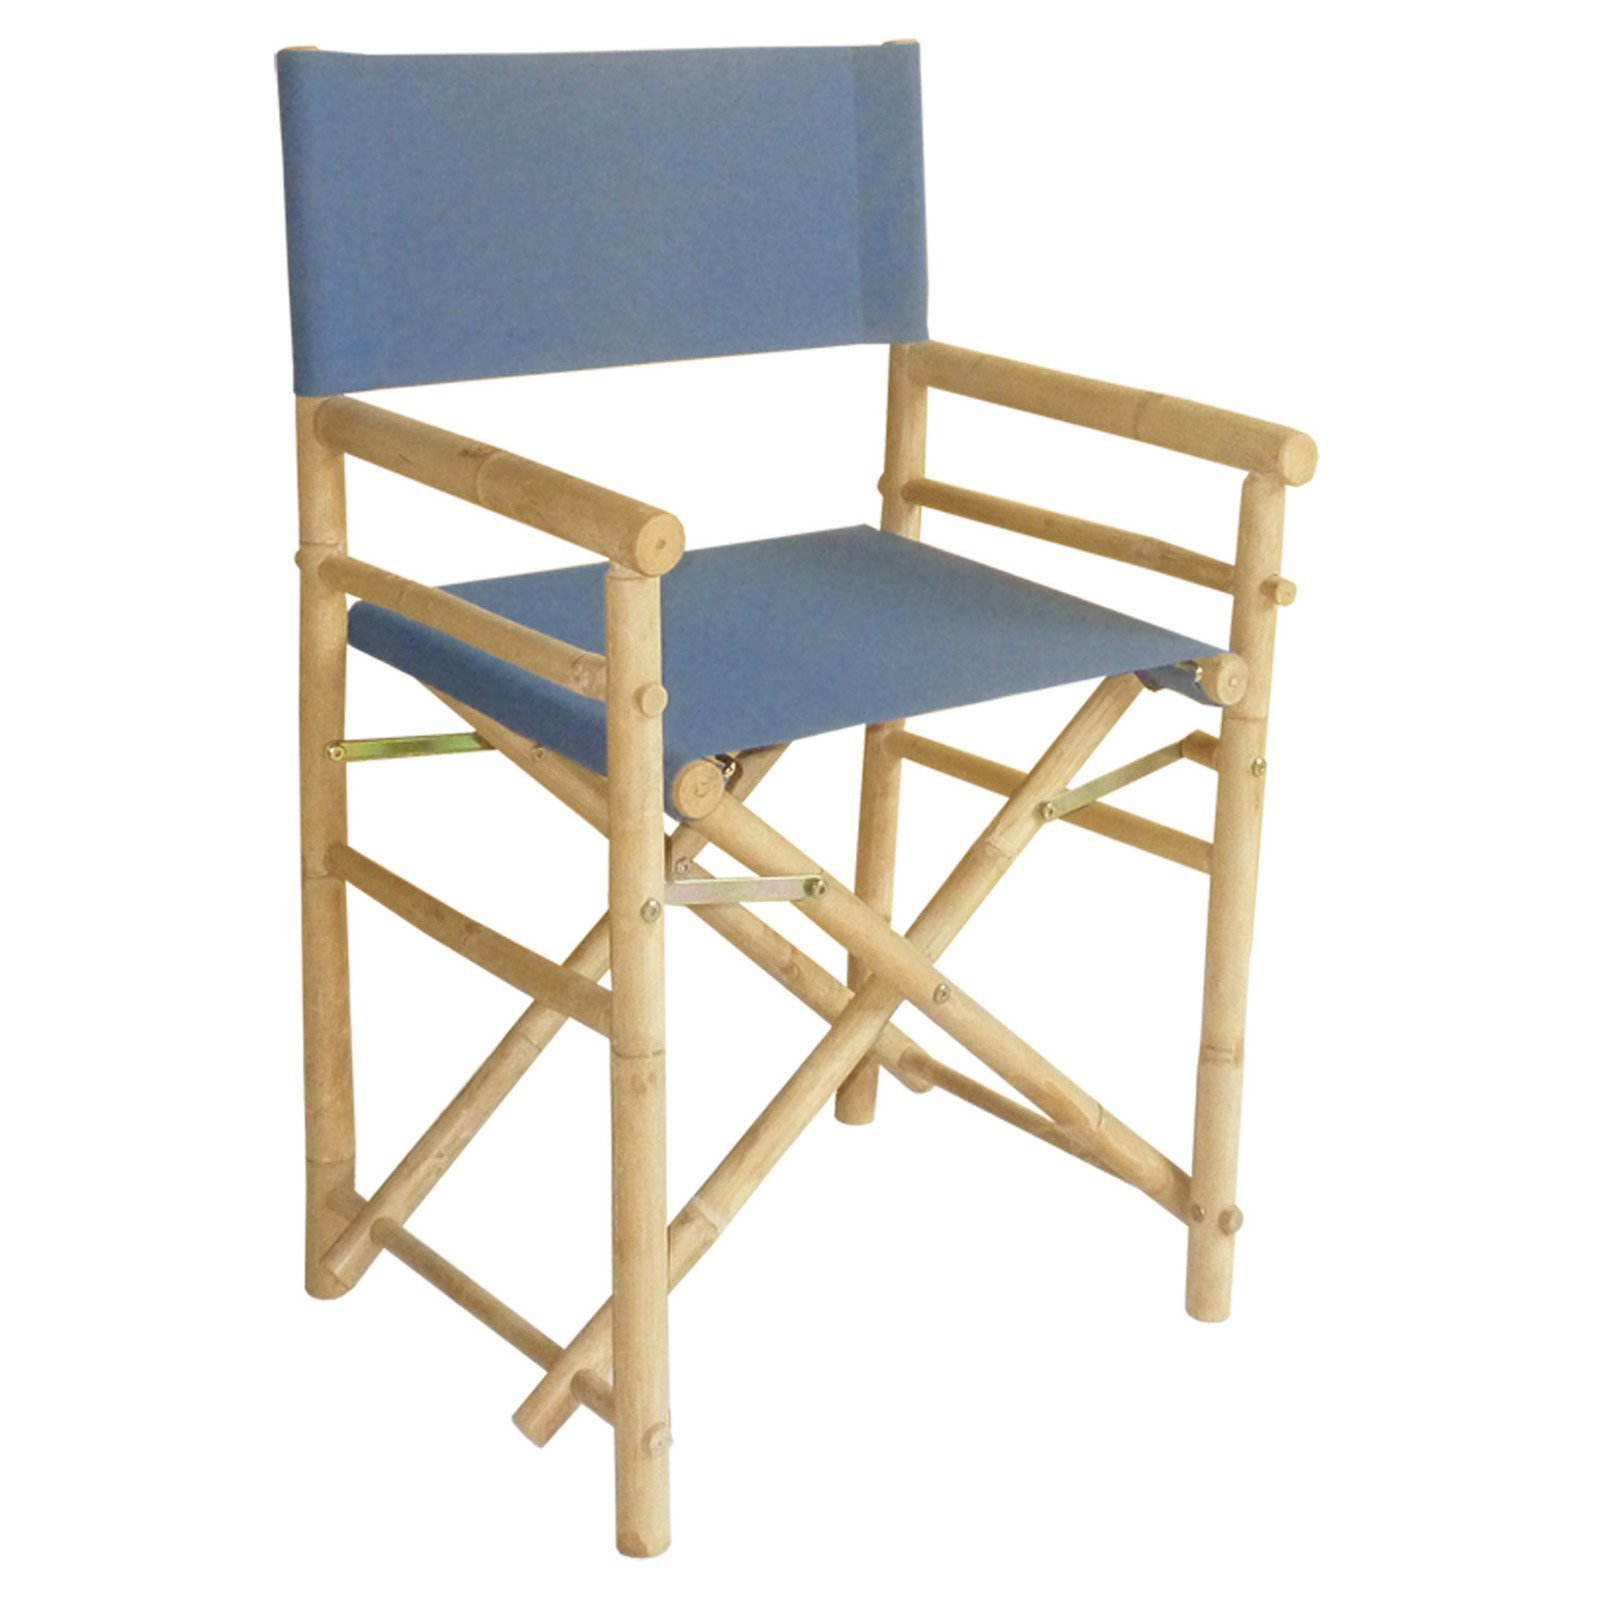 director chair replacement covers ebay salon for sale bamboo directors canvas cover set walmart com